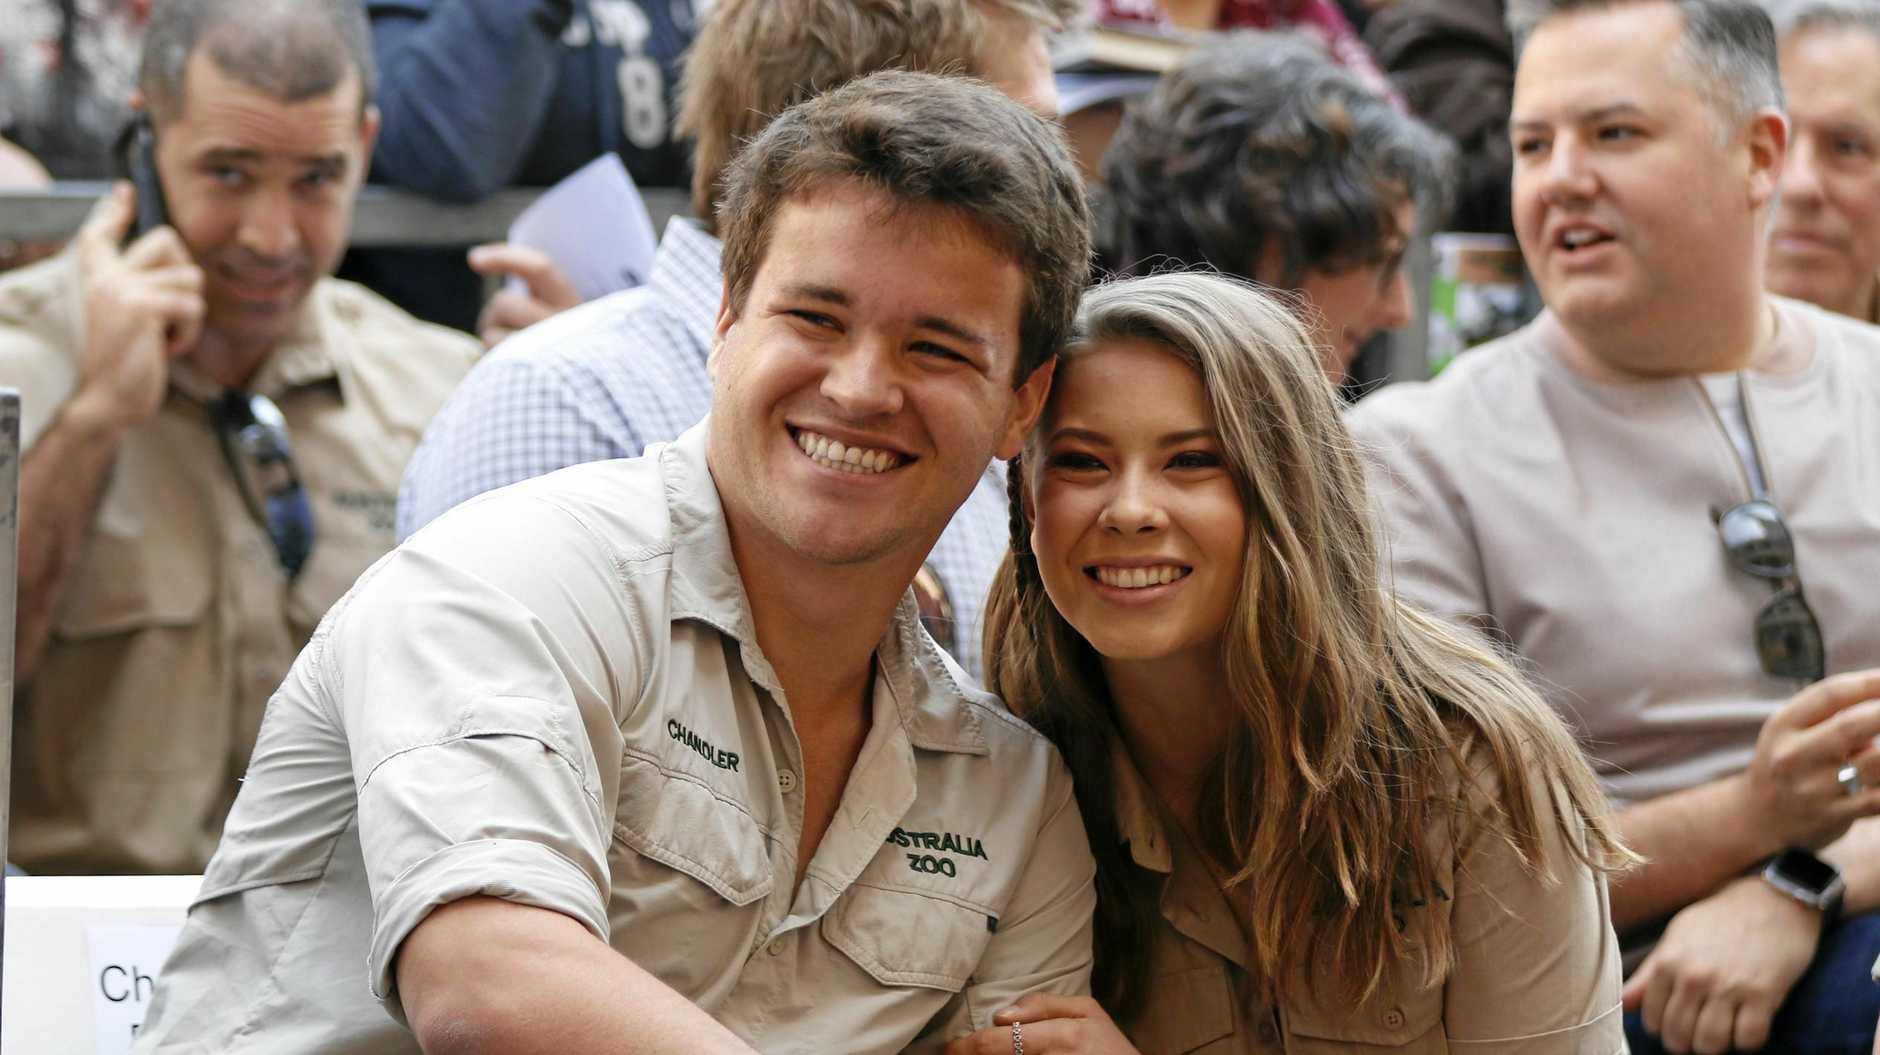 Chandler Powell, left, and Bindi Irwin appear at a ceremony honoring the late Steve Irwin with a star on the Hollywood Walk of Fame on Thursday, April 26, 2018, in Los Angeles. (Photo by Willy Sanjuan/Invision/AP)